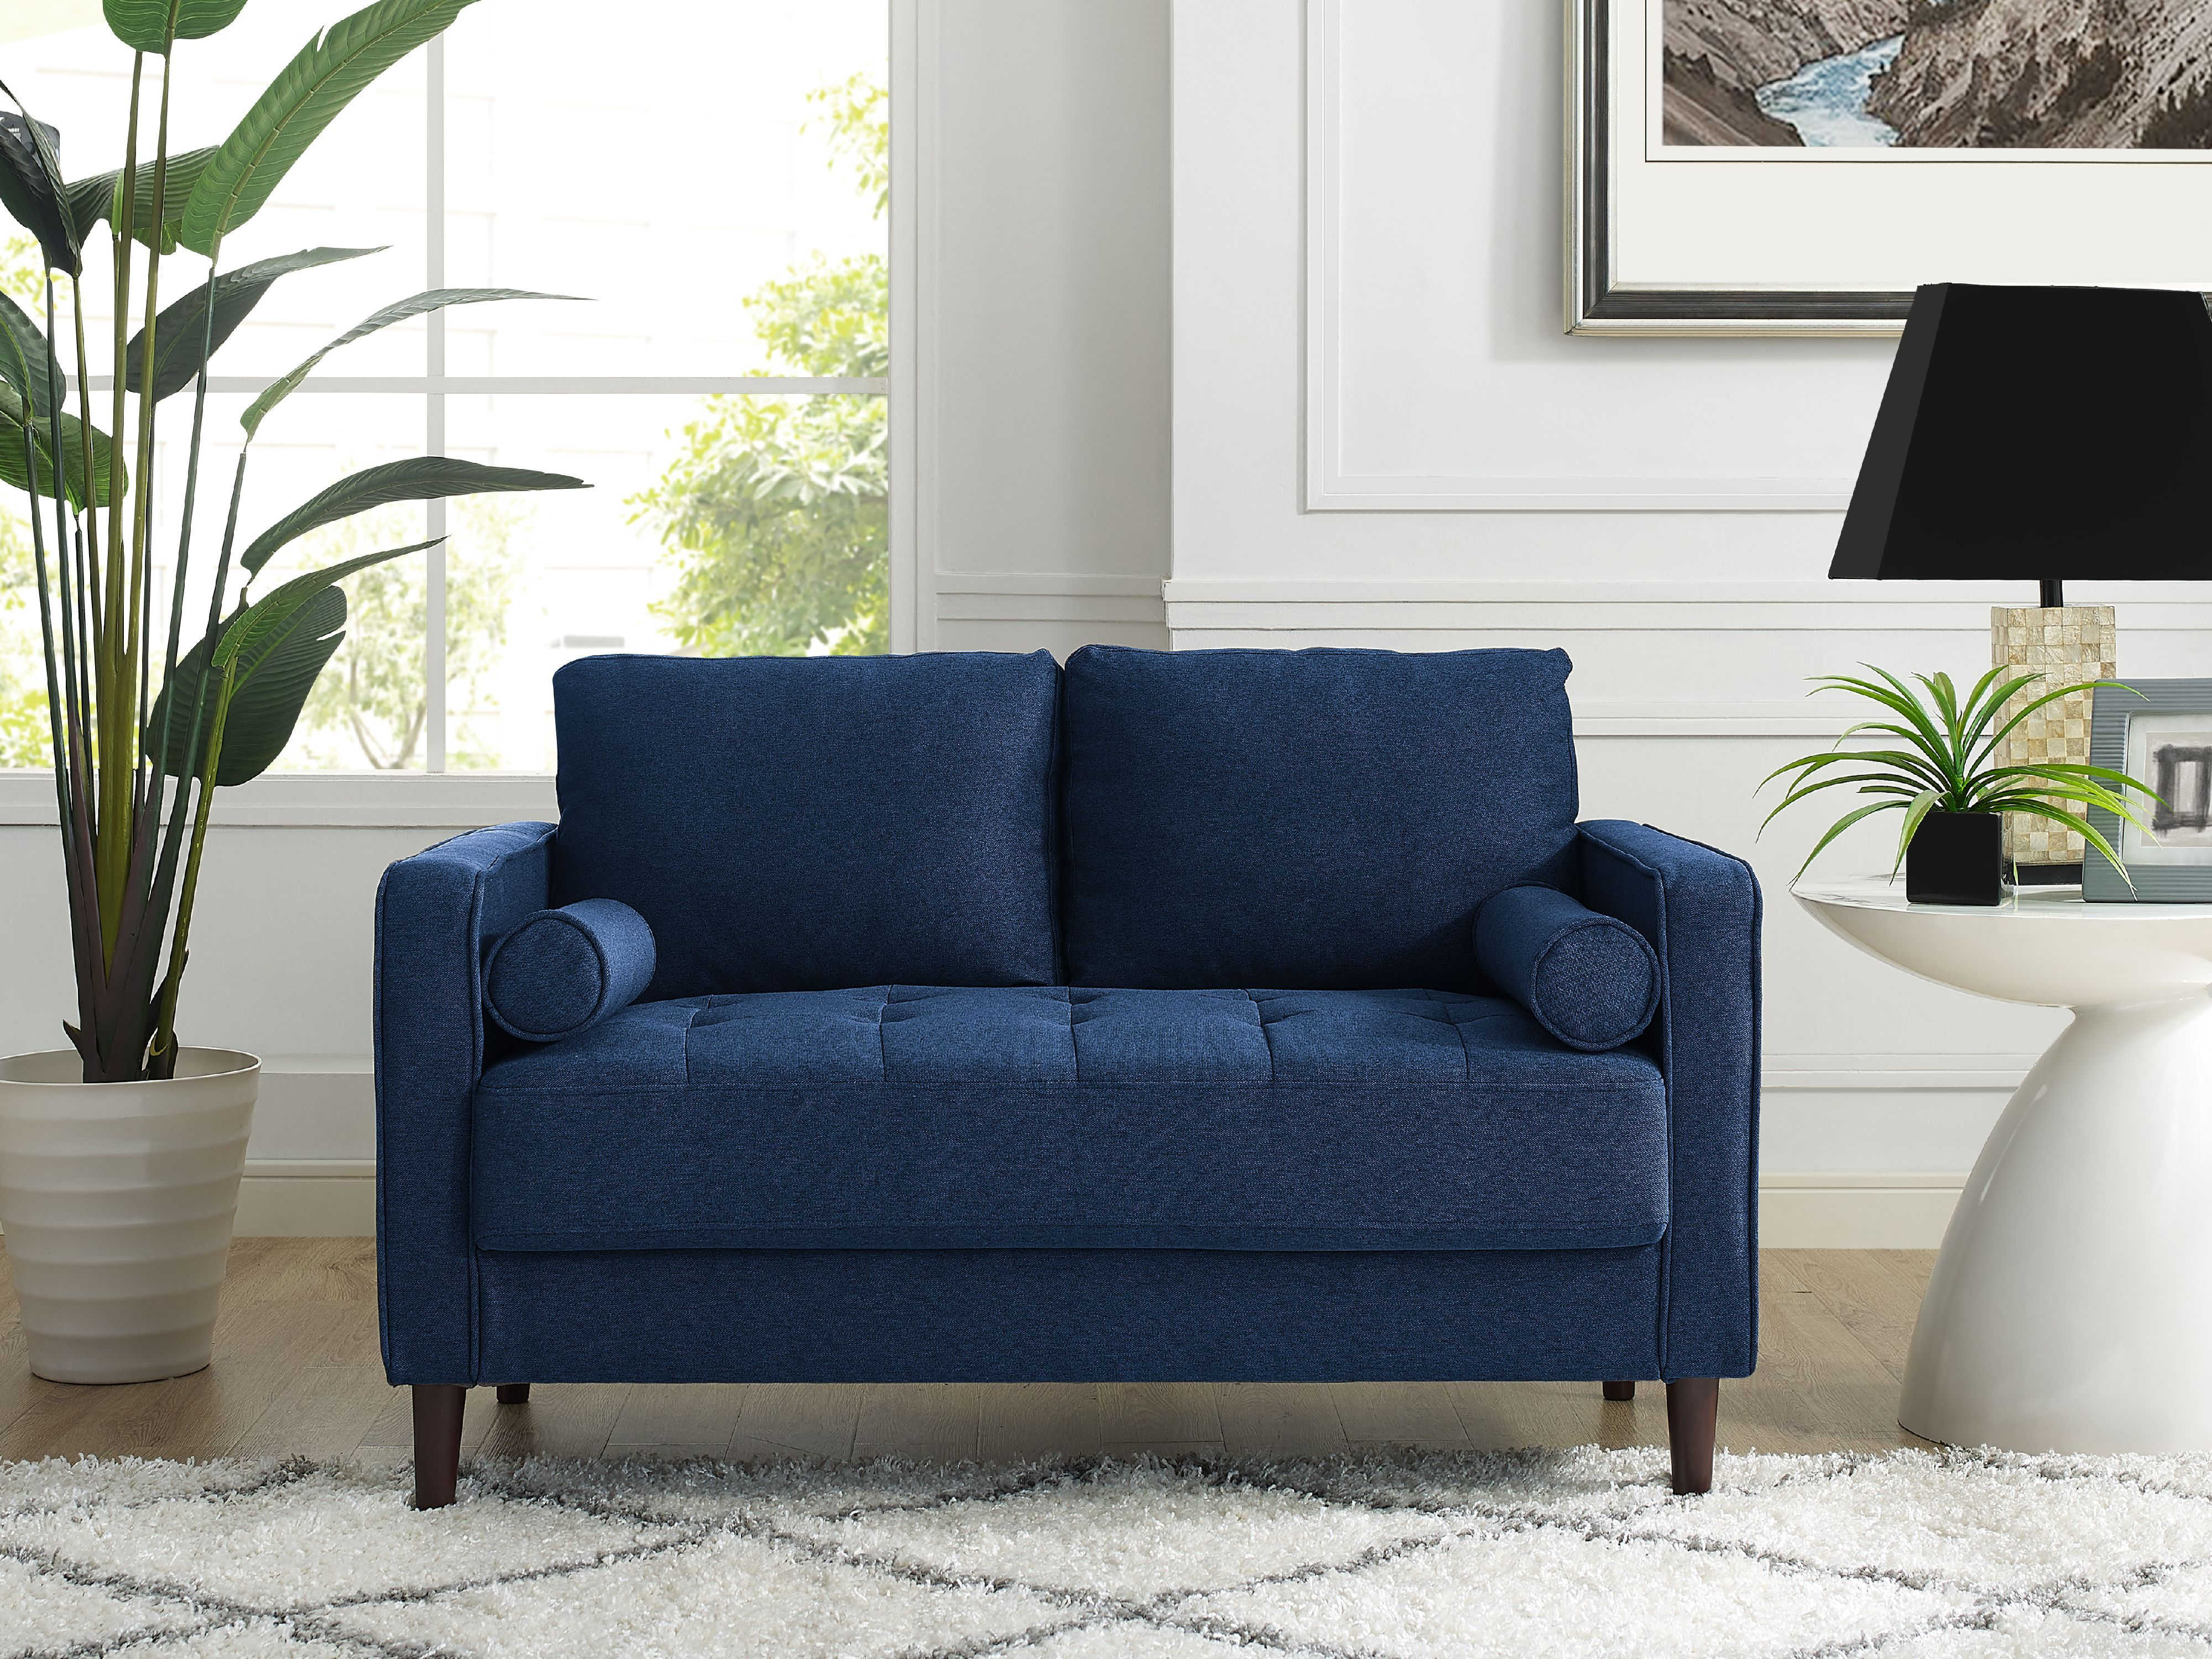 Lifestyle Solutions Lorelei Loveseat With Upholstered Fabric And Eucalyptus Wood Frame Navy Blue Walmart Com Small Couch In Bedroom Loveseat Living Room Loveseats For Small Spaces